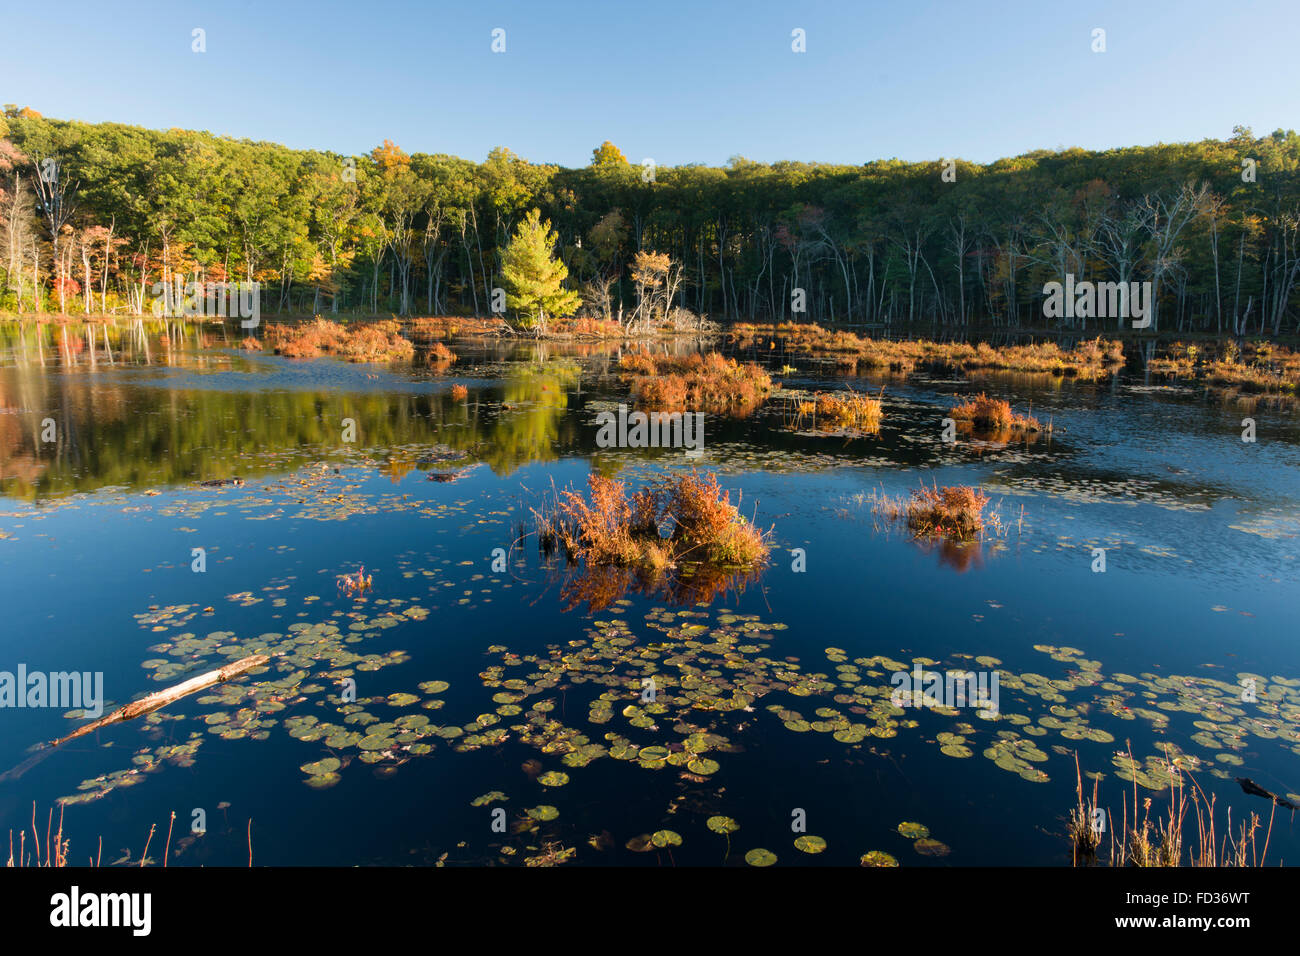 Fall colors in Harold Parker State Forest, Andover, Massachusetts - Stock Image